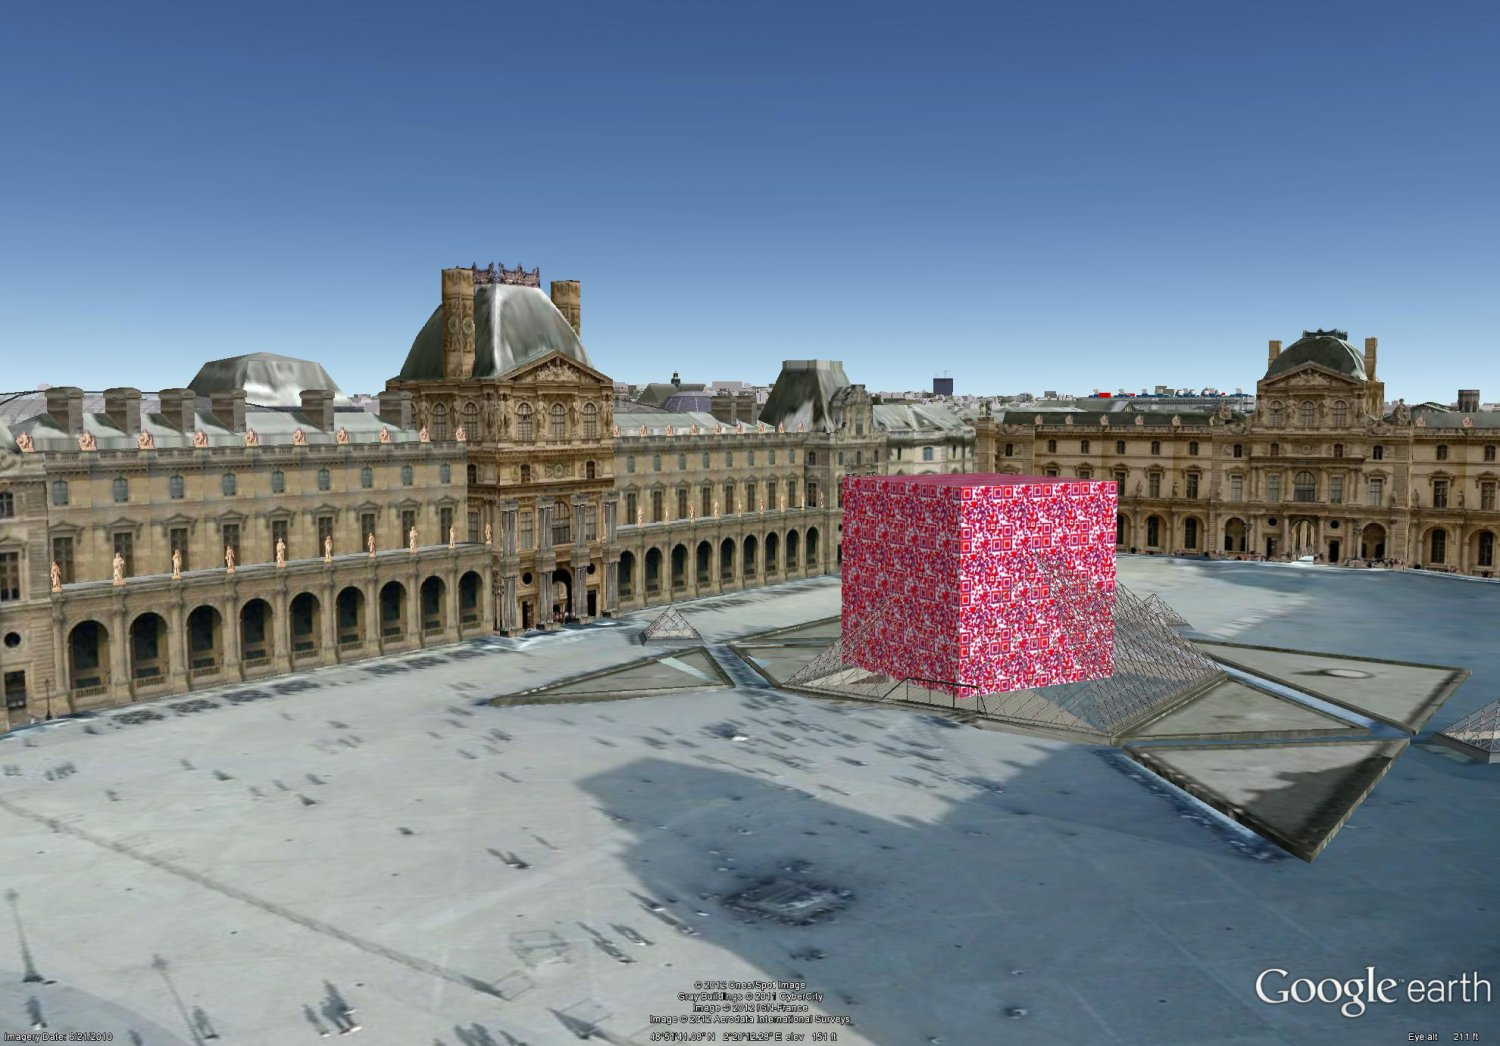 - The Borg QR cube lands before the Louvre in Paris, sitting on La Pyramide. -  - Art and the Zen of QR Codes - QaRt - making art from QR codes. - - art  - photography - by Tony Karp